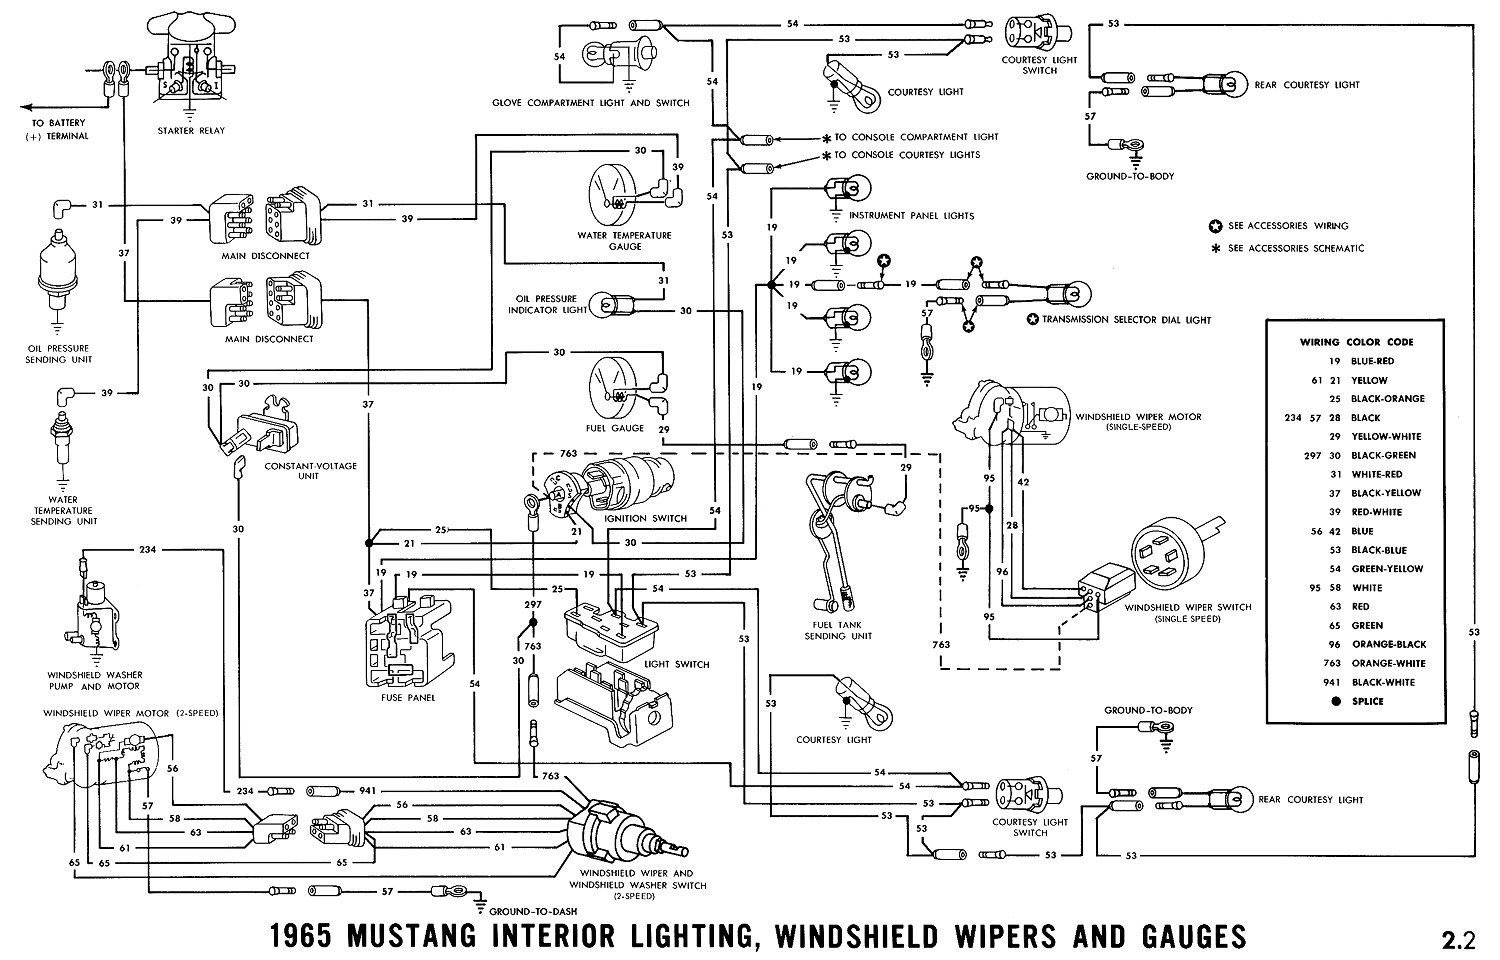 1967 camaro headlight switch wiring diagram with 1965 Mustang Wiring Diagrams on 1999 Chevy Silverado Power Steering System also Blowermotor likewise Chevy Van Ignition Wiring Diagram For 2012 further Wiring Diagram Mini Wiper together with 1978 Vw Bus Alternator Wiring Diagram.